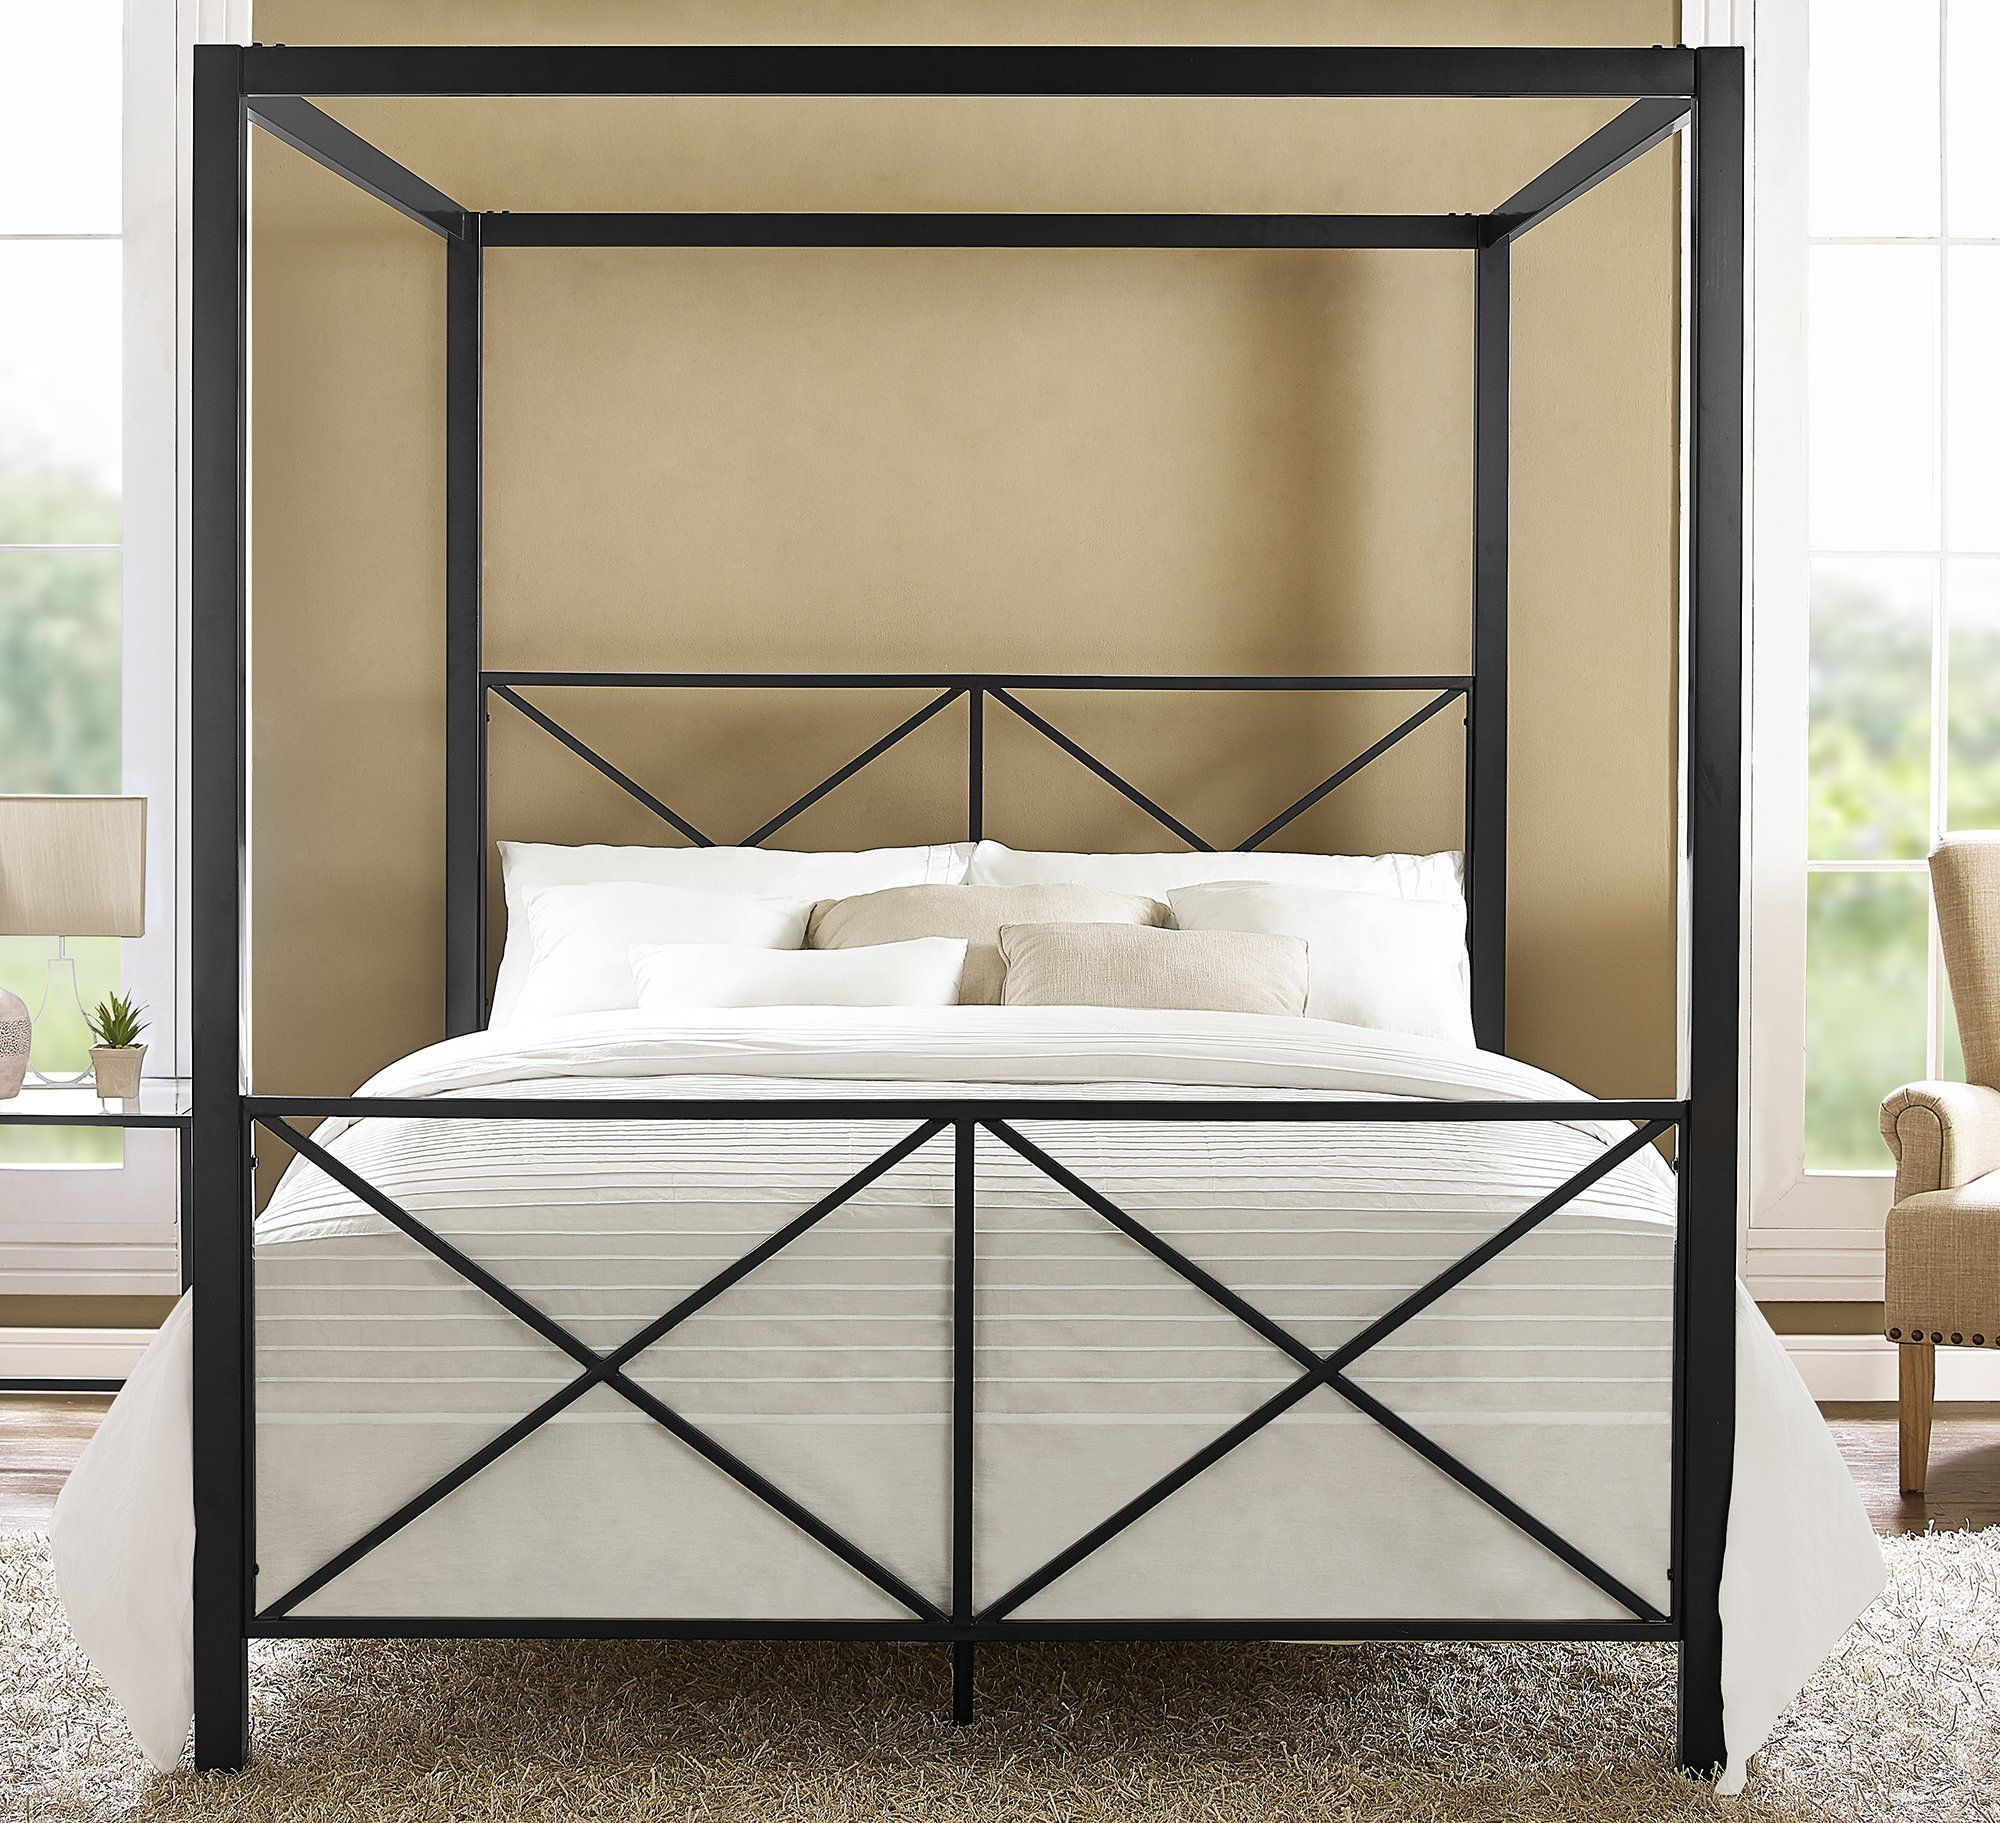 Tilden standard metal bed inspire q bedroom spaces apartment bedroom - Dhp Rosedale Modern Romance Metal Queen Canopy Bed Frame In Black Sturdy Metal Frame